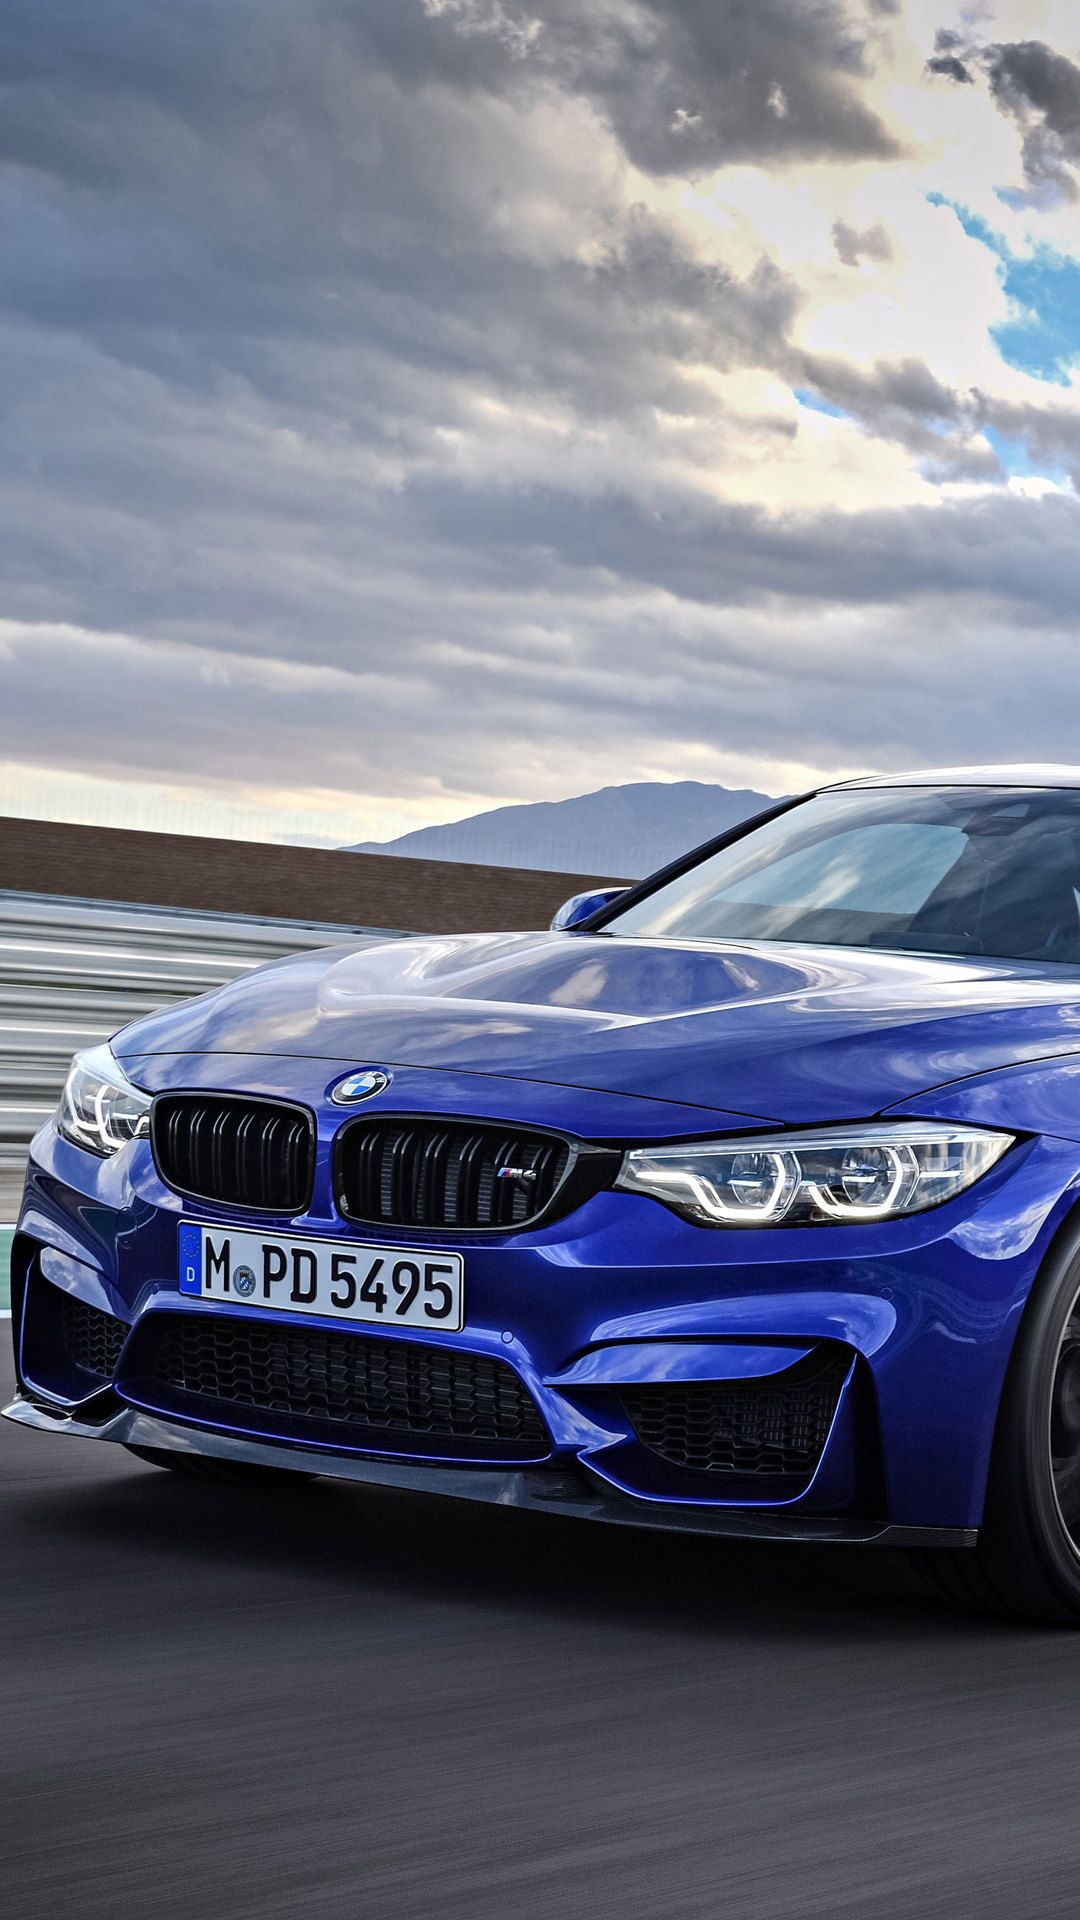 Bmw M4 Wallpapers Full Hd Hupages Download Iphone Wallpapers